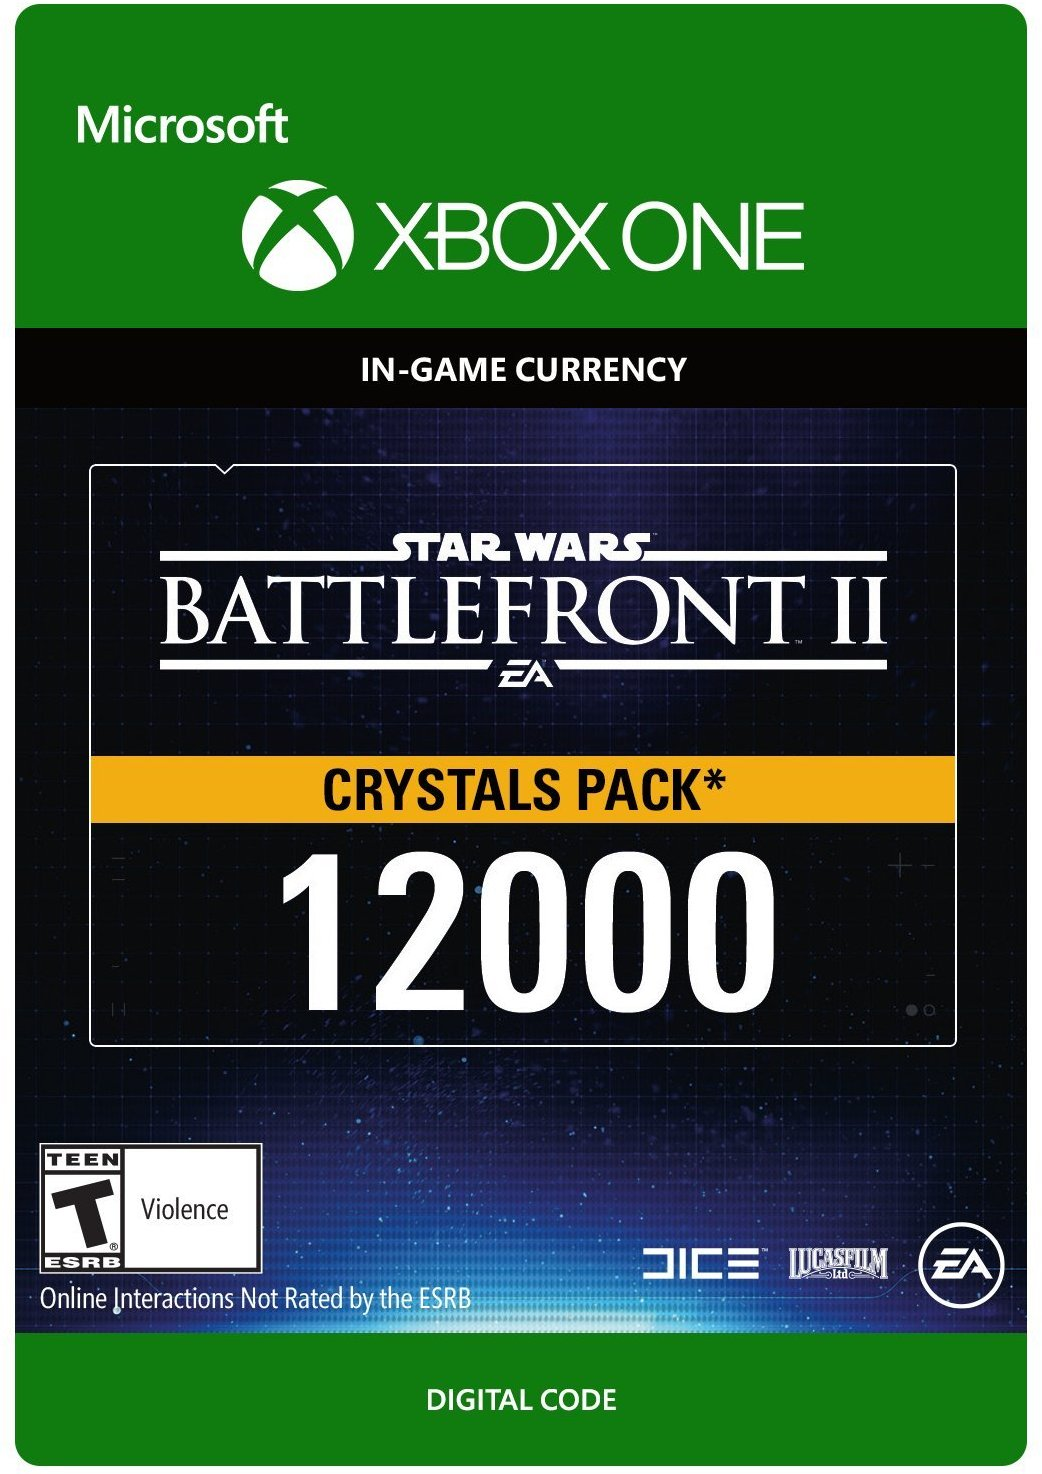 Star Wars: Battlefront II Crystals Currency Listing